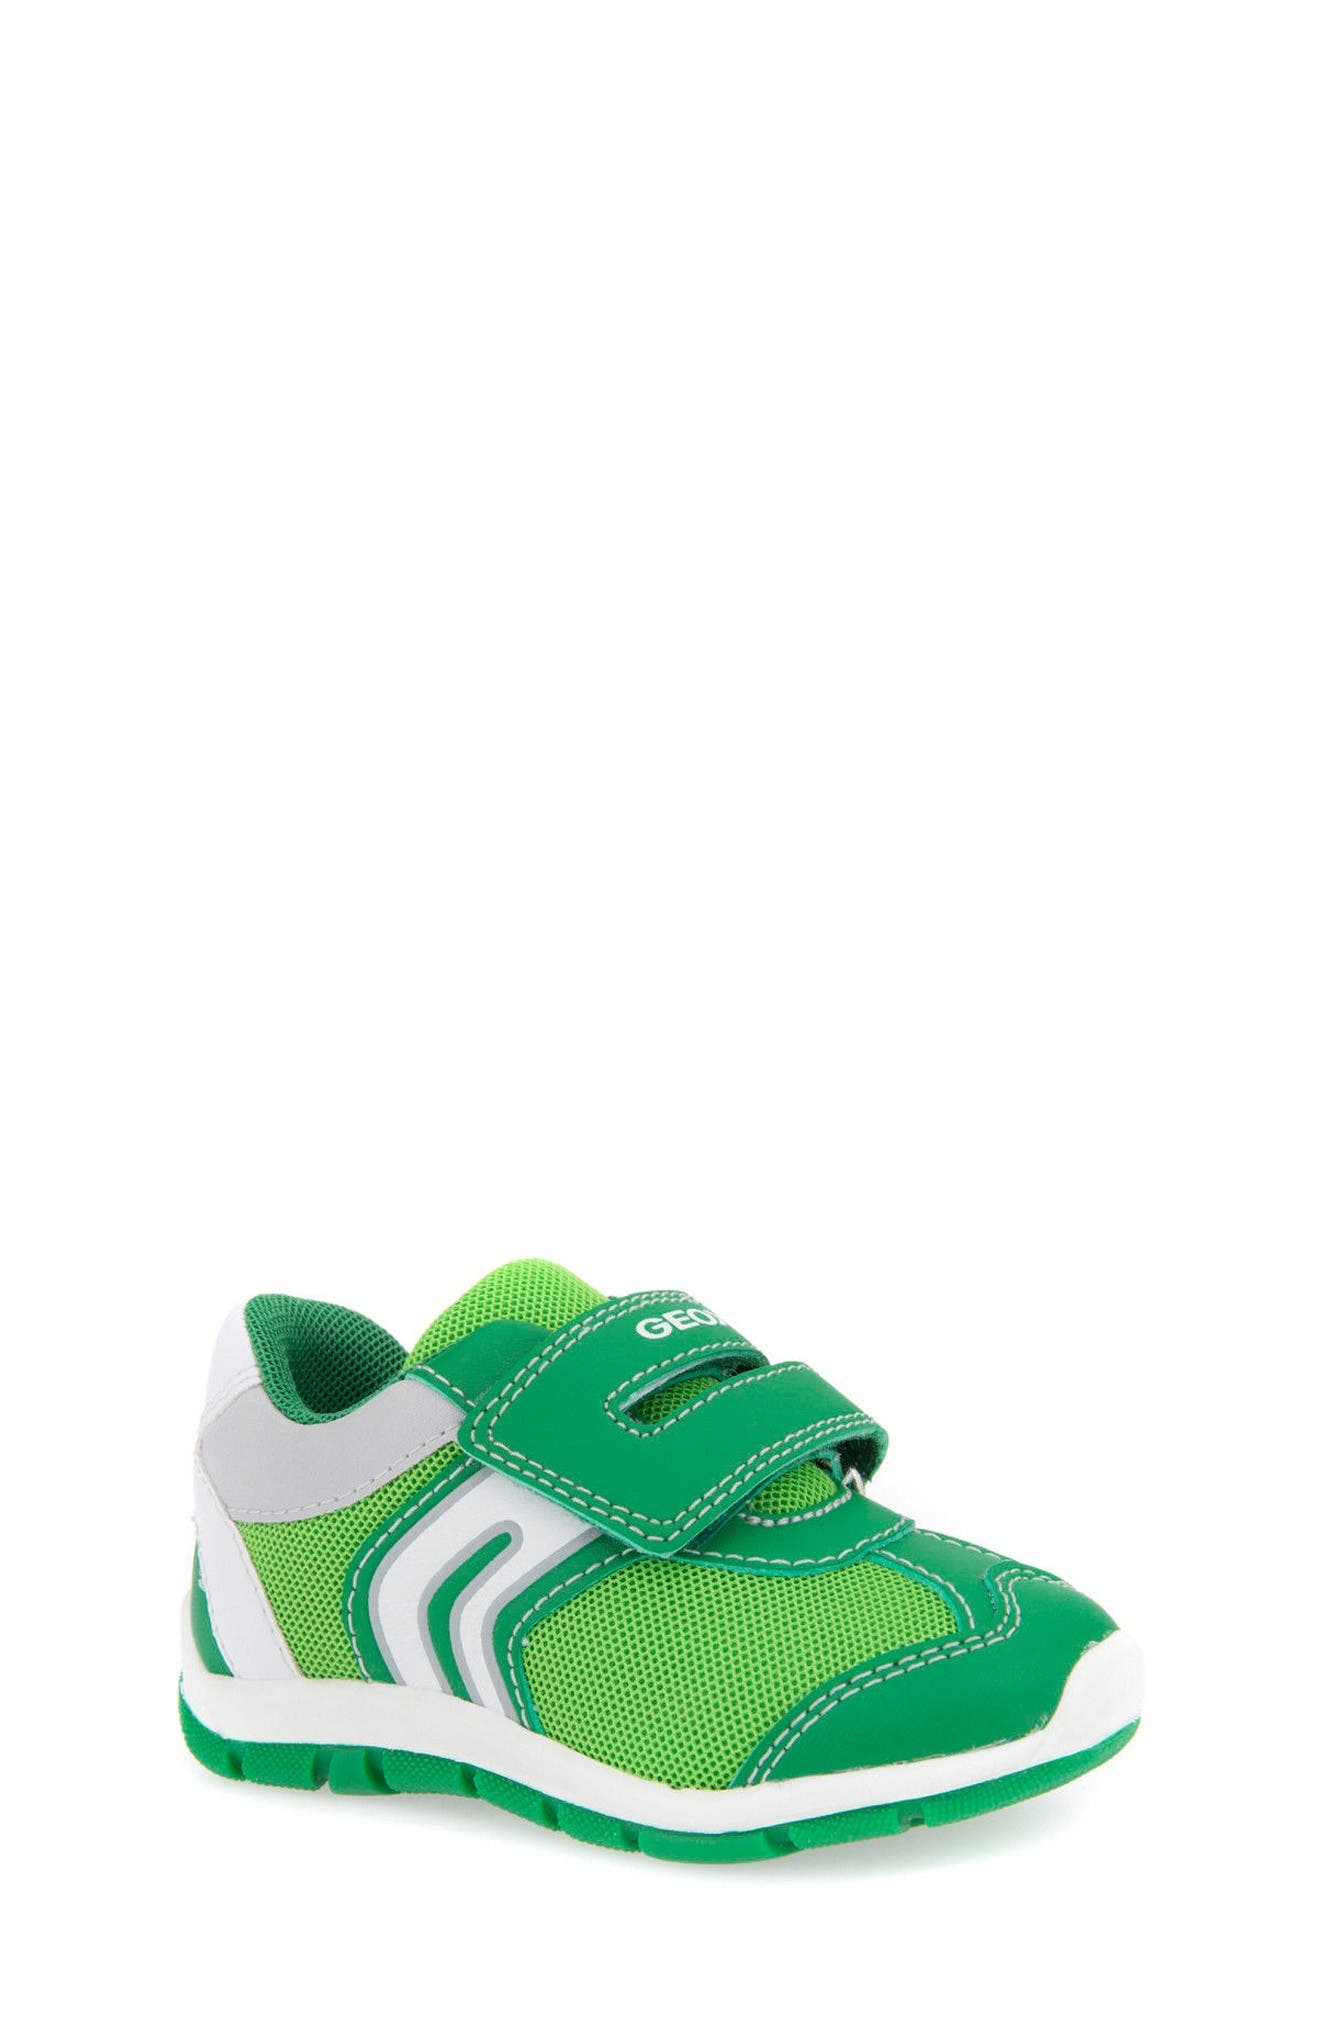 'Shaax 9' Sneaker,                         Main,                         color, Green